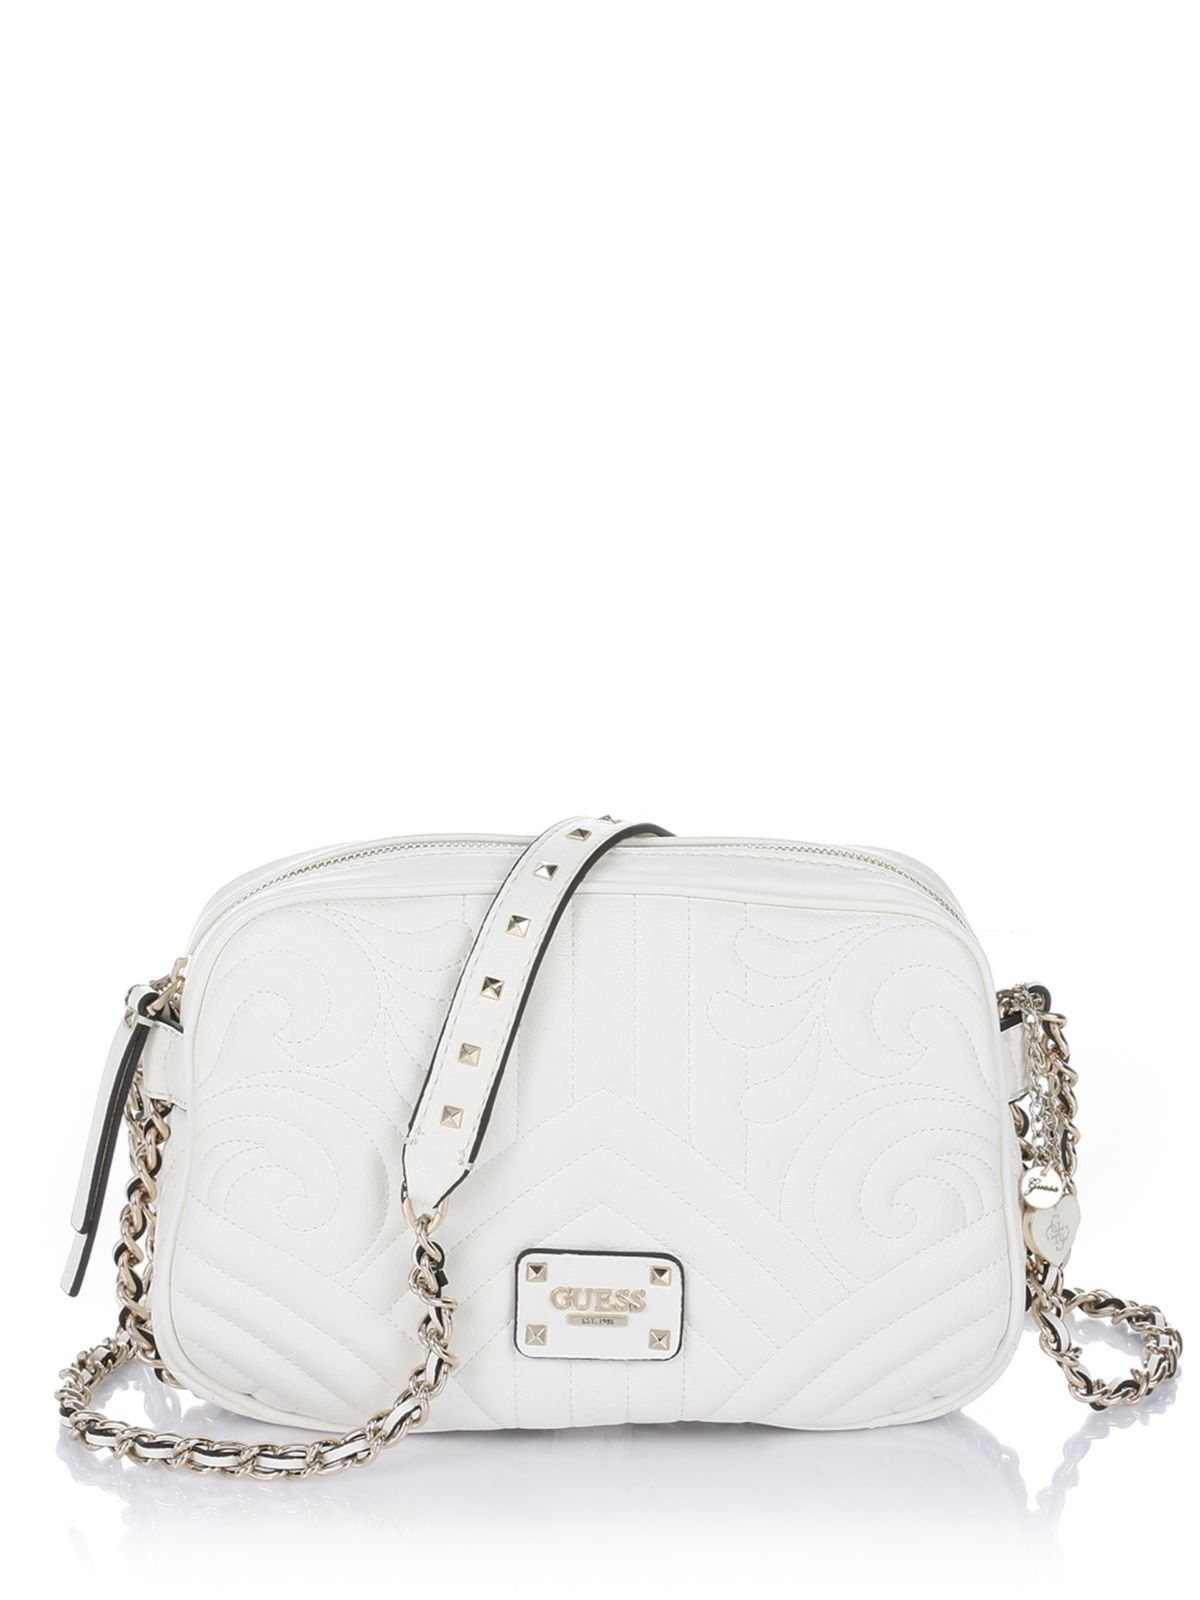 Guess Quilting Rose Crossbody Top Zip Bag In White Cream